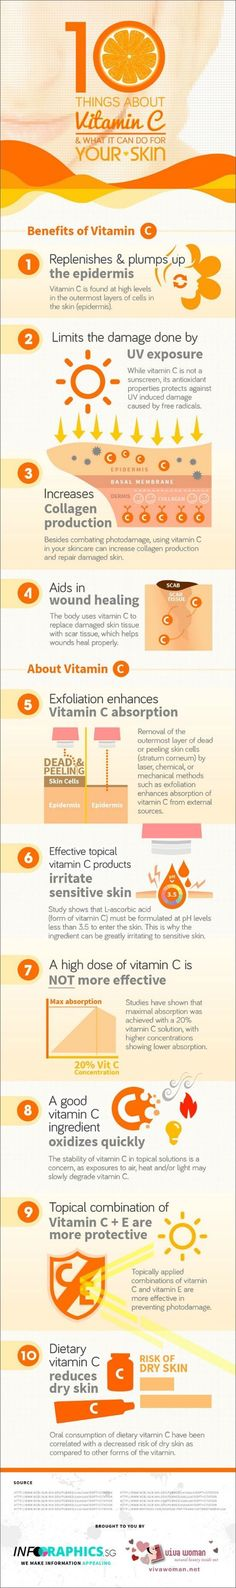 10 tens about vitamin C and what it can do for your skin. #vitaminC #beautytips #skincare